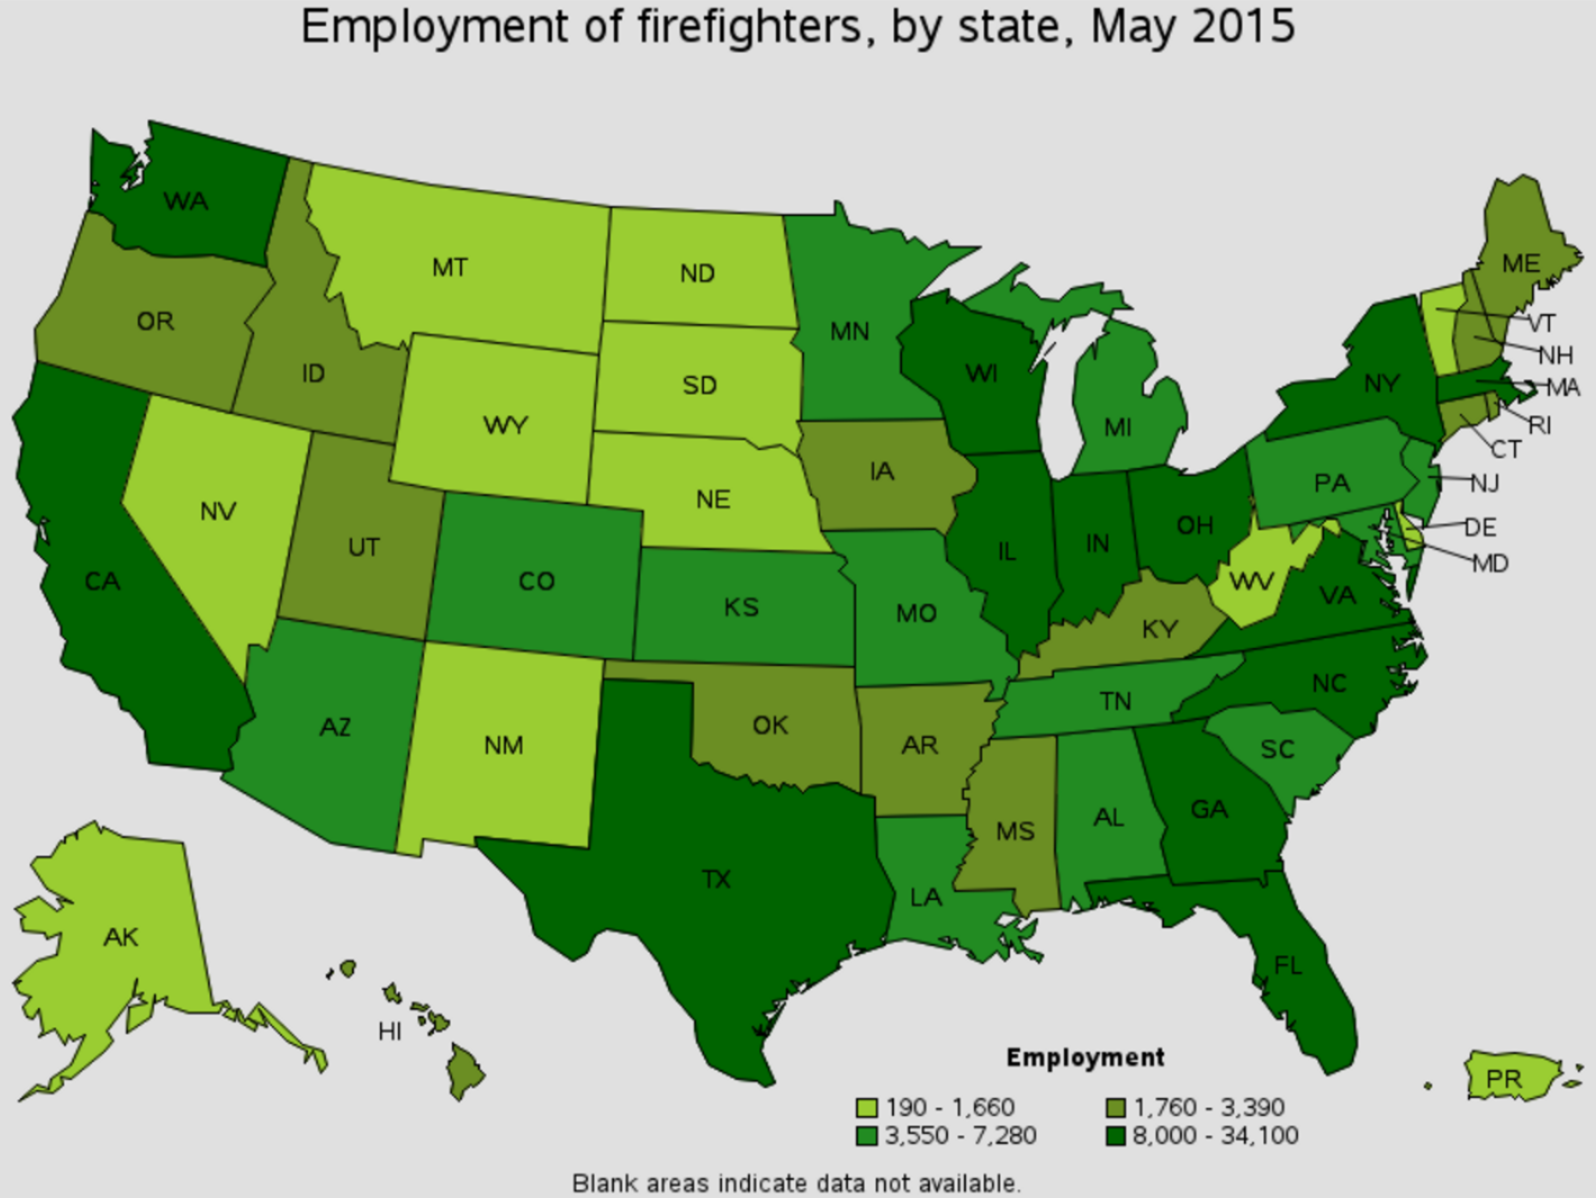 firefighter job outlook by state Visalia California